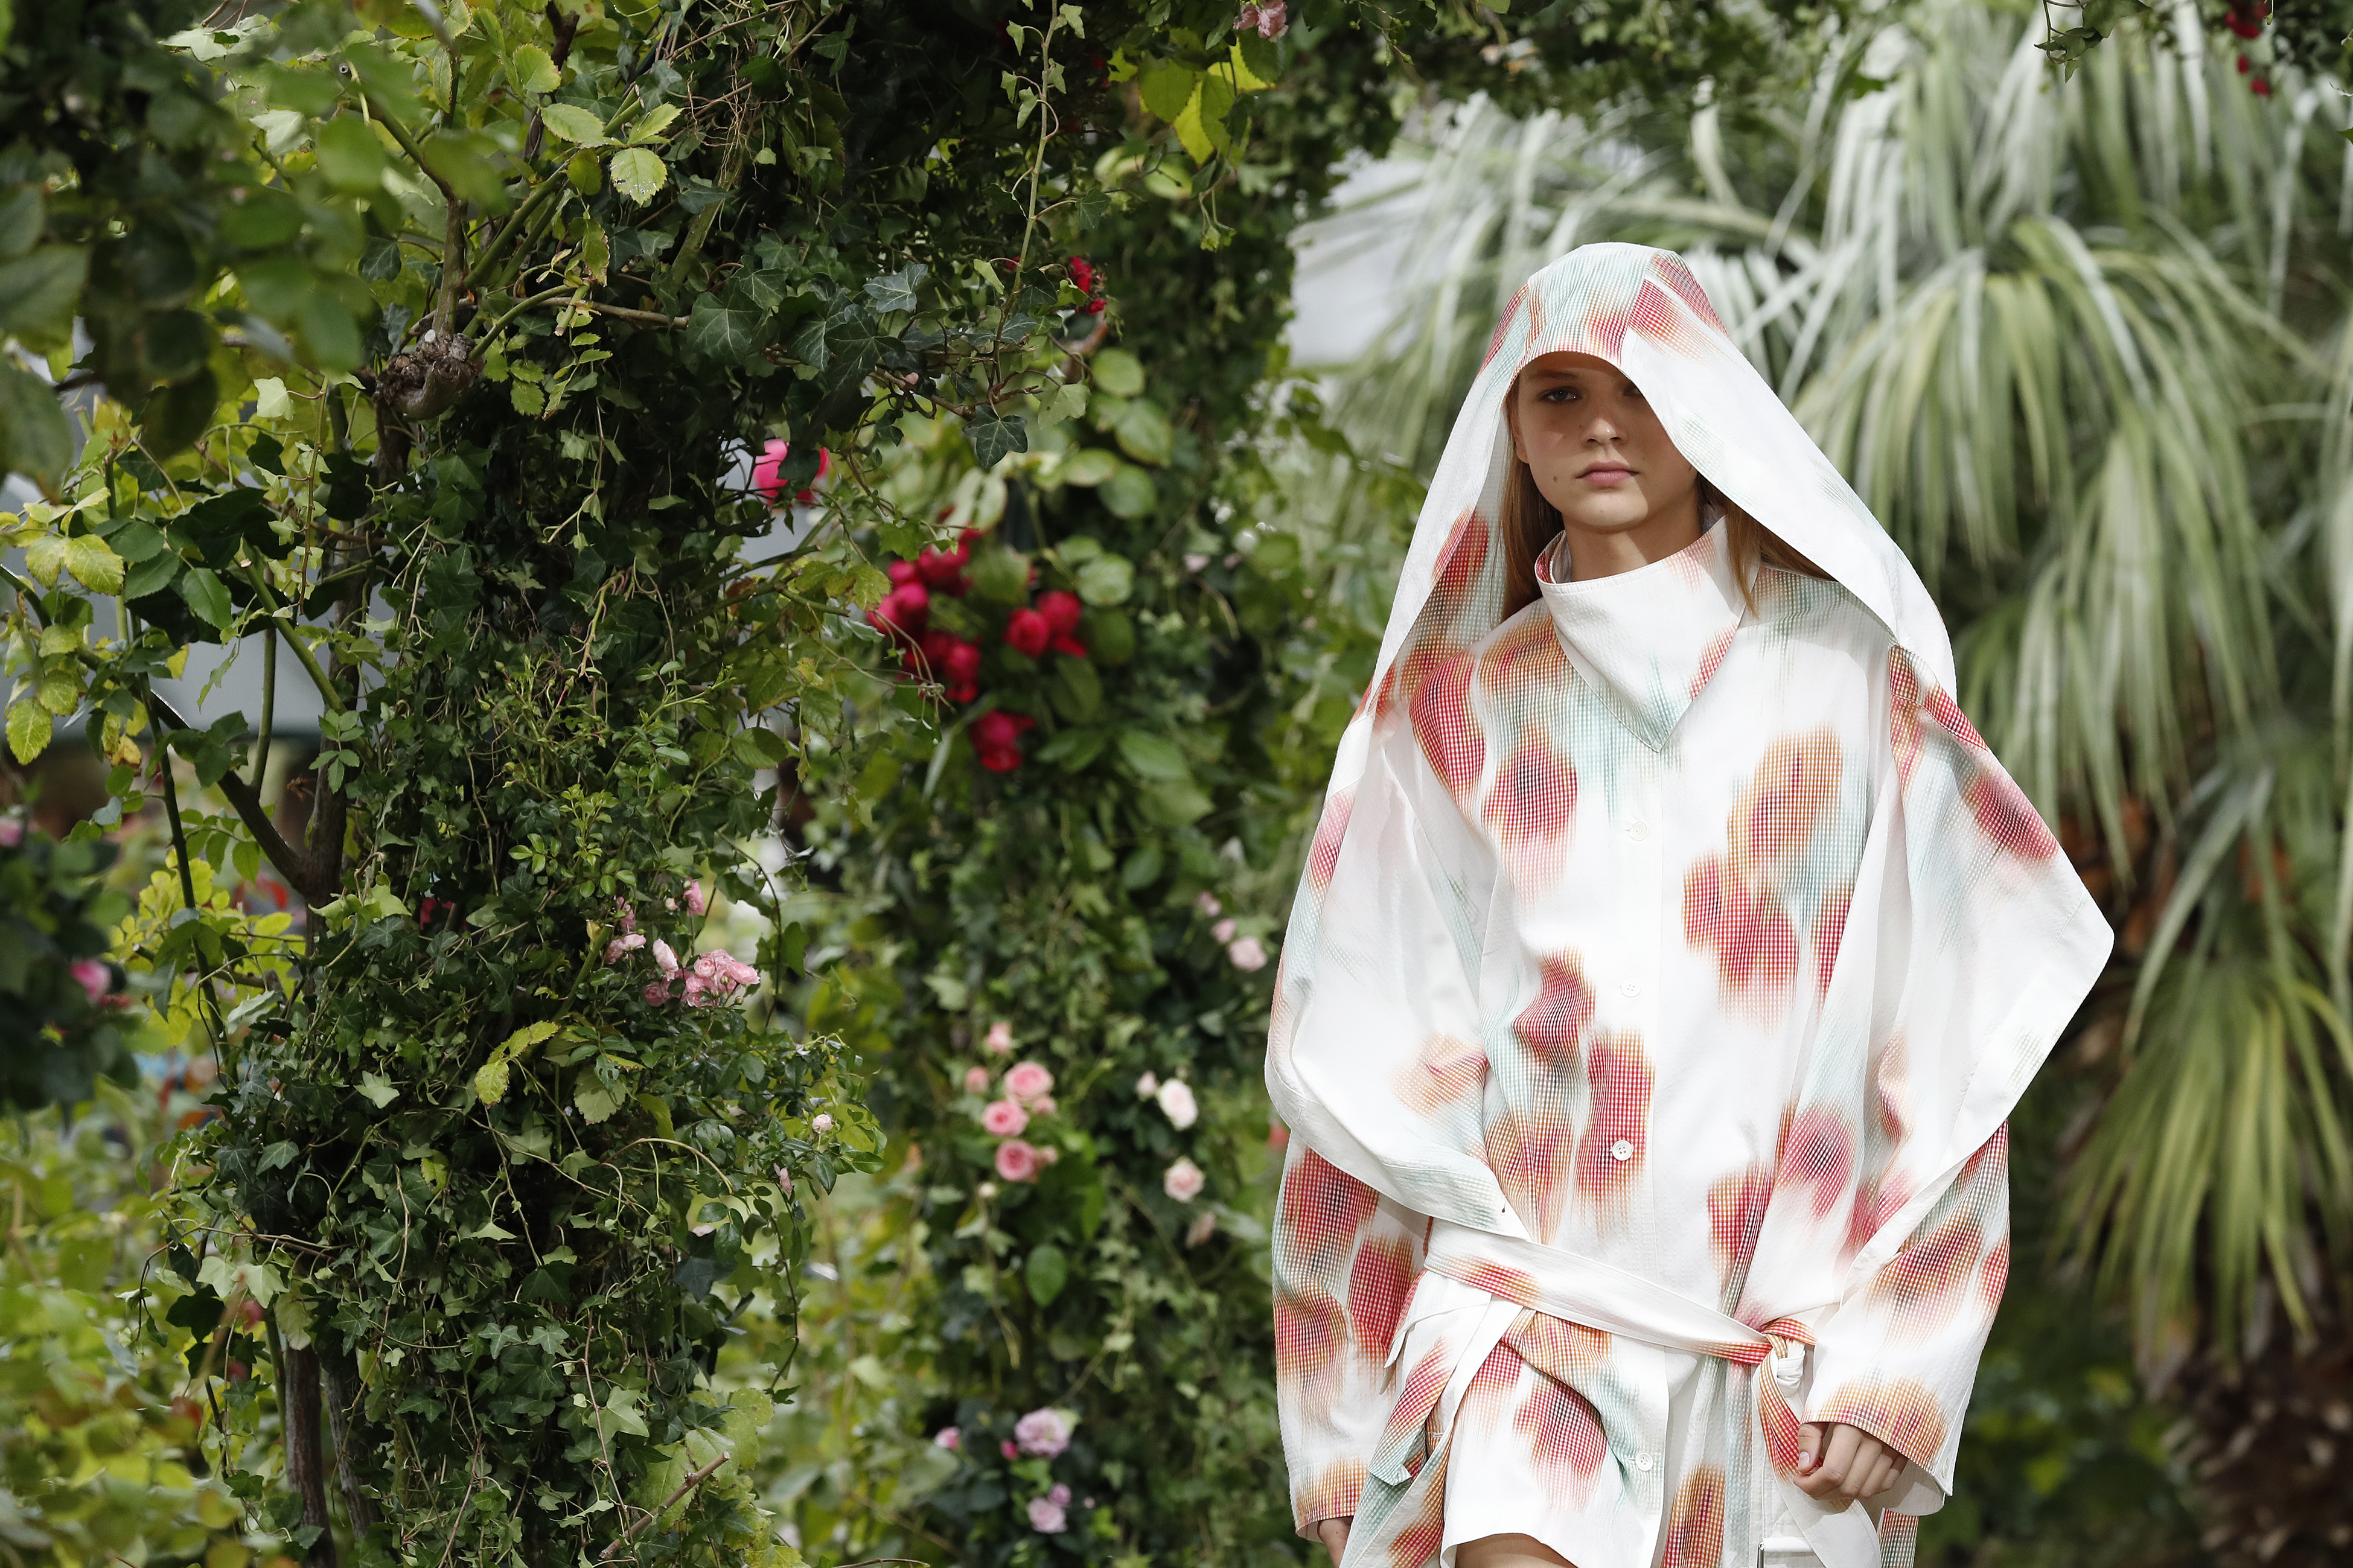 Kenzo Gets The Buzz At Bee-Themed Paris Fashion Week Show